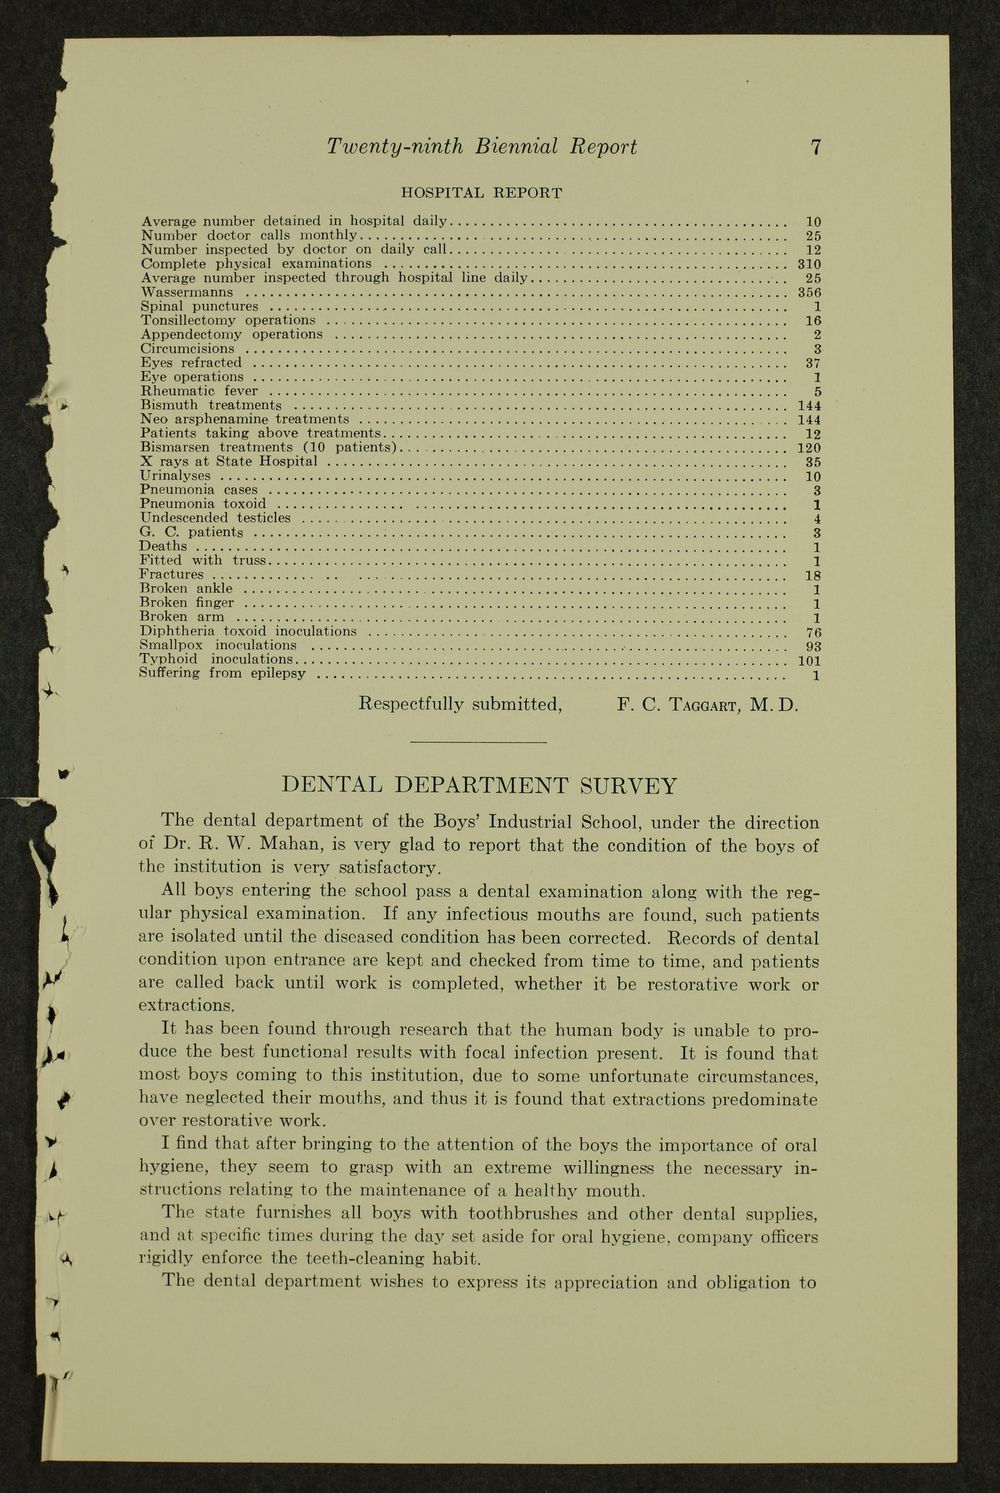 Biennial report of the Boys Industrial School, 1938 - 7